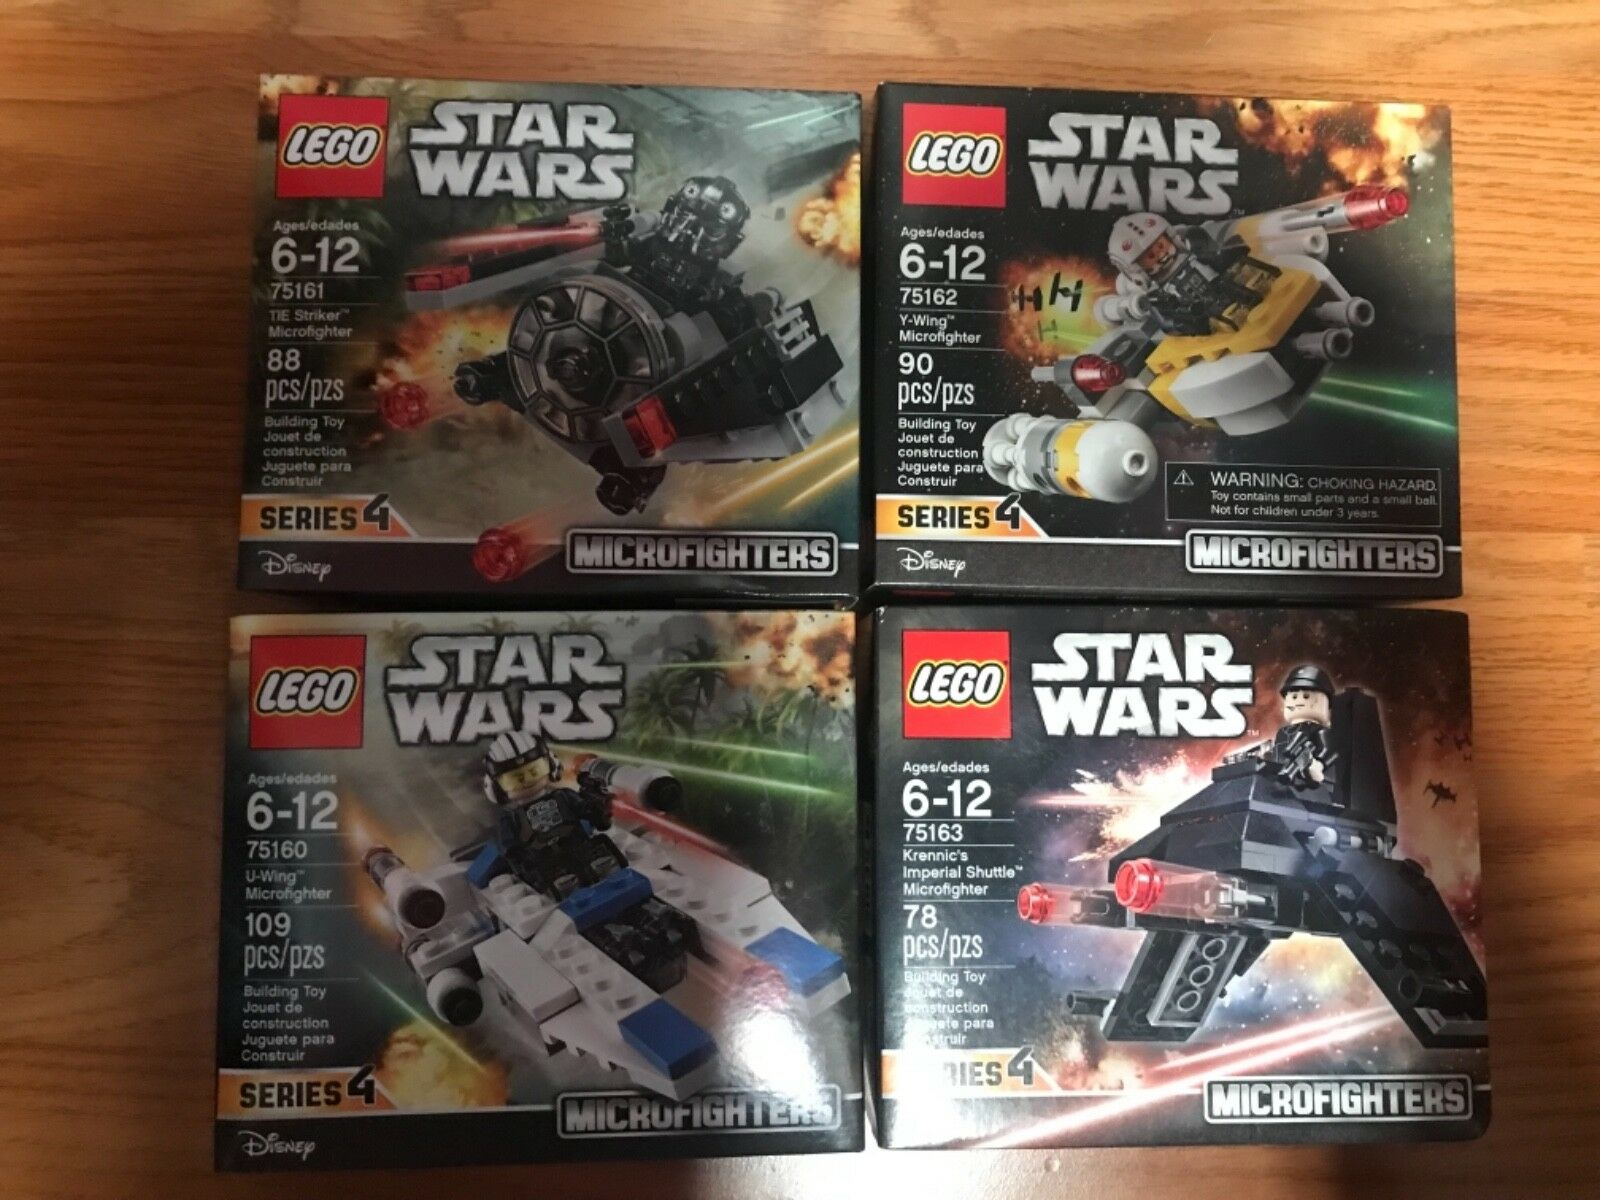 LEGO Star Wars 75160 U-Wing, 75161 TIE Striker, 75162 Y-Wing, 75163 Krennic's